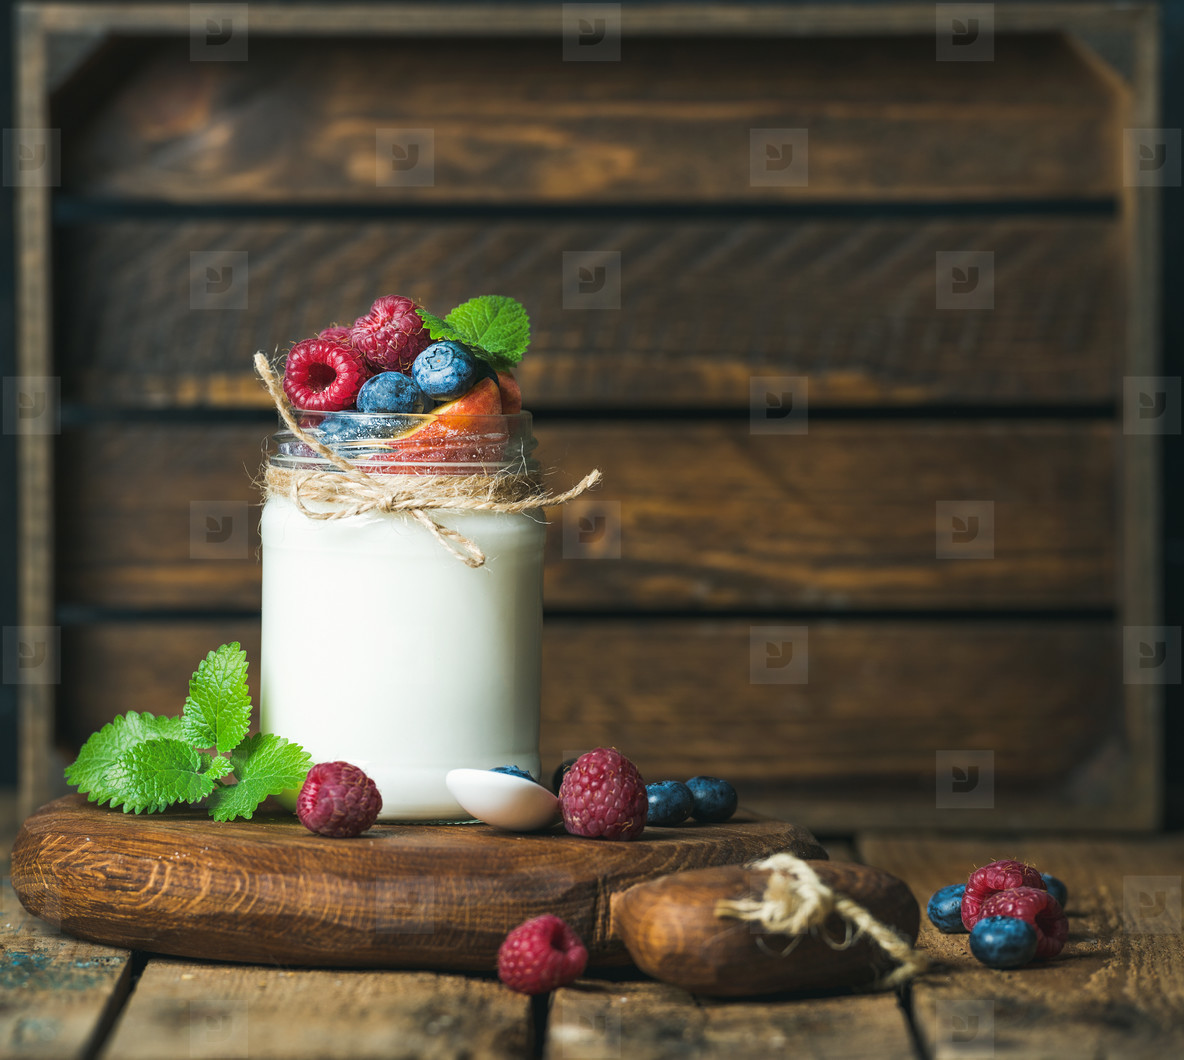 White yogurt in jar with fresh berries  peach  mint leaves